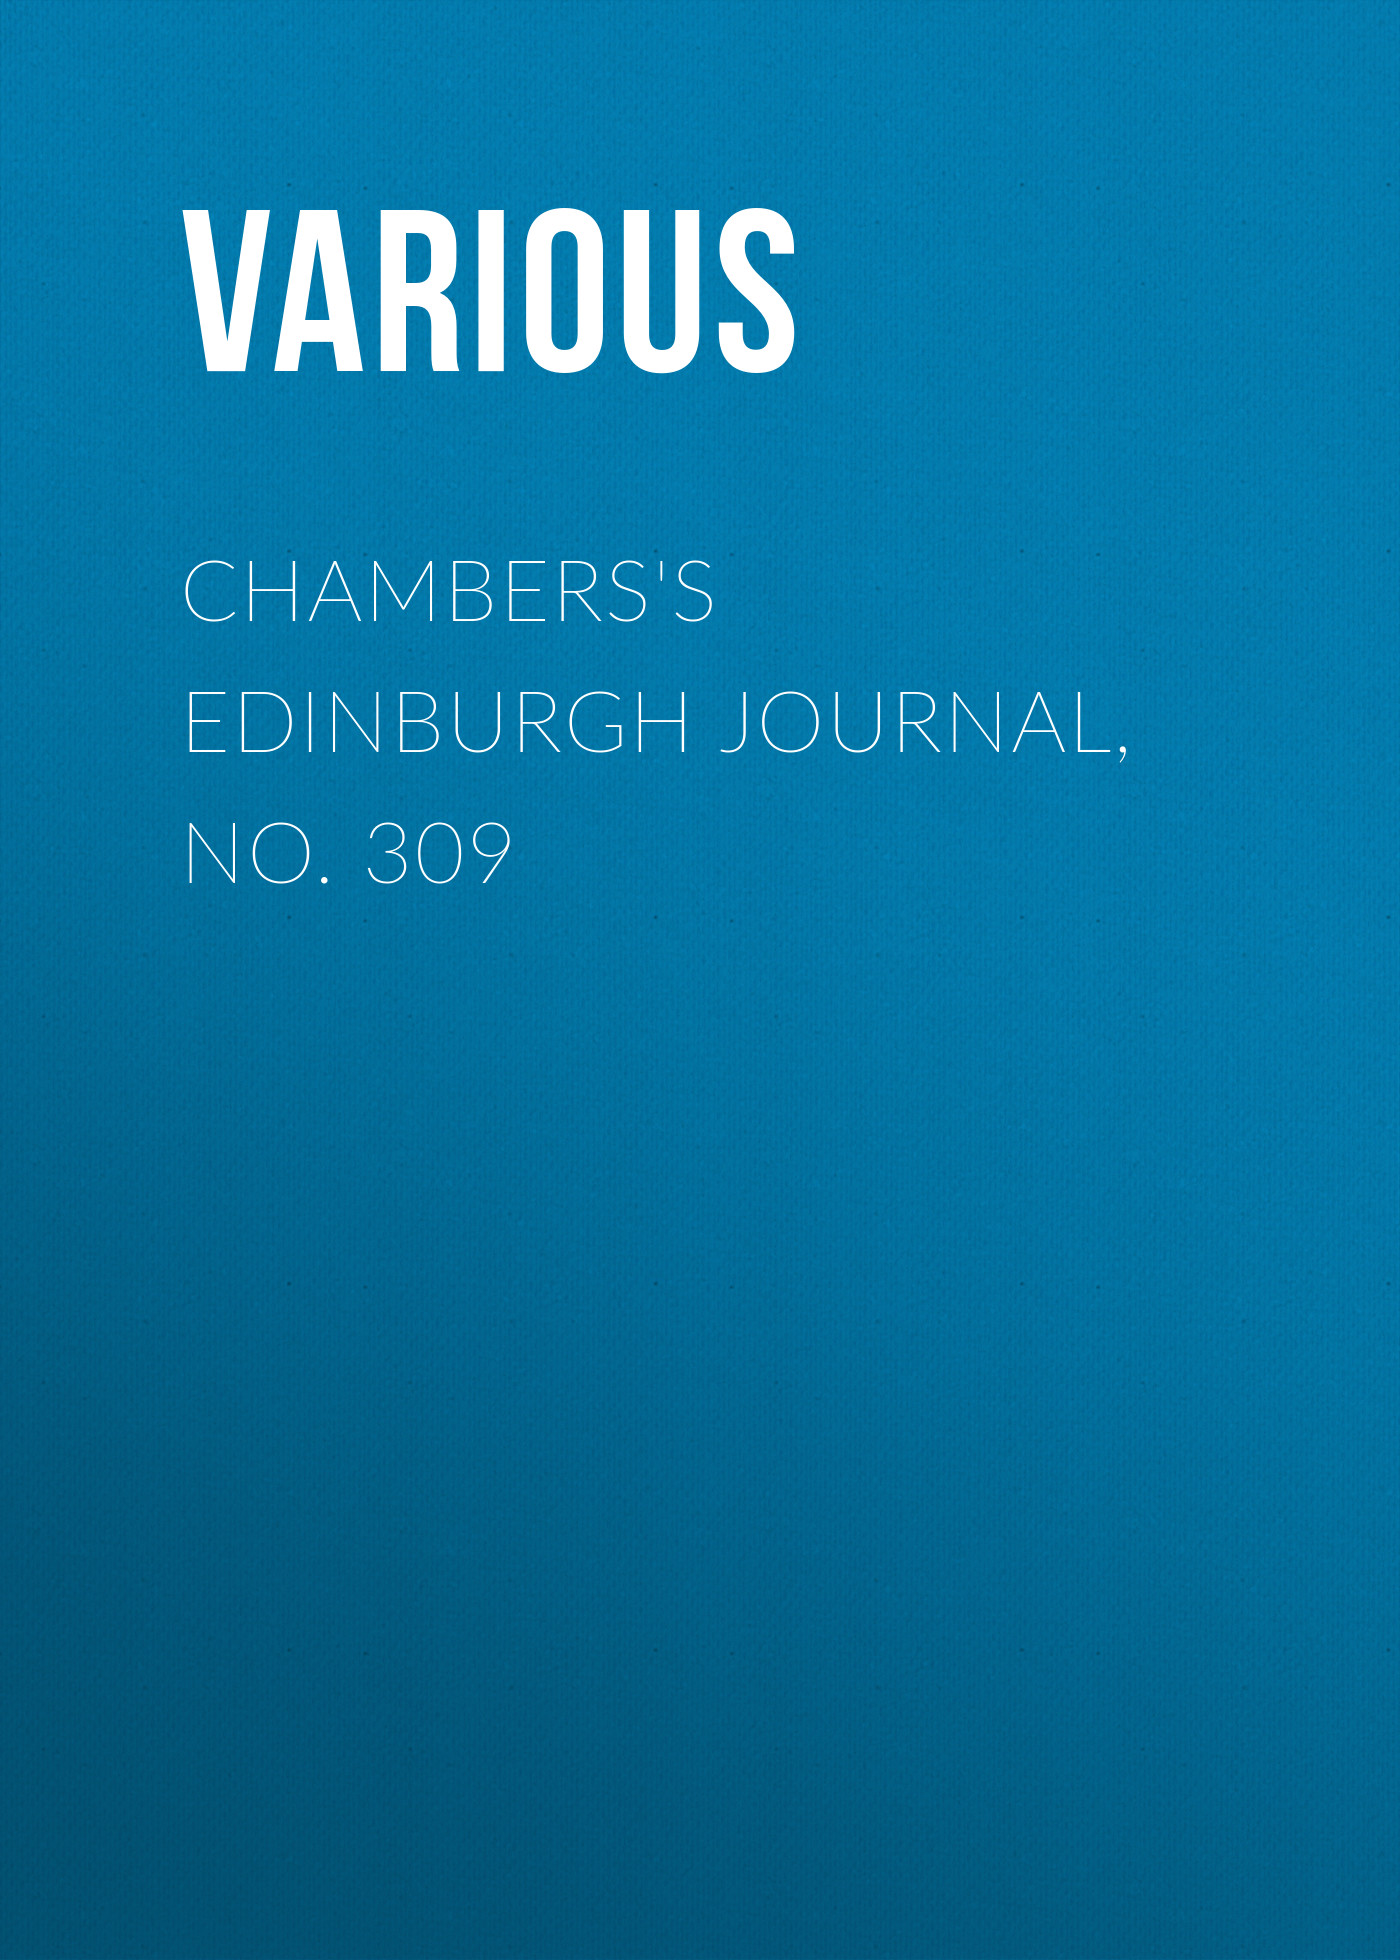 Chambers's Edinburgh Journal, No. 309